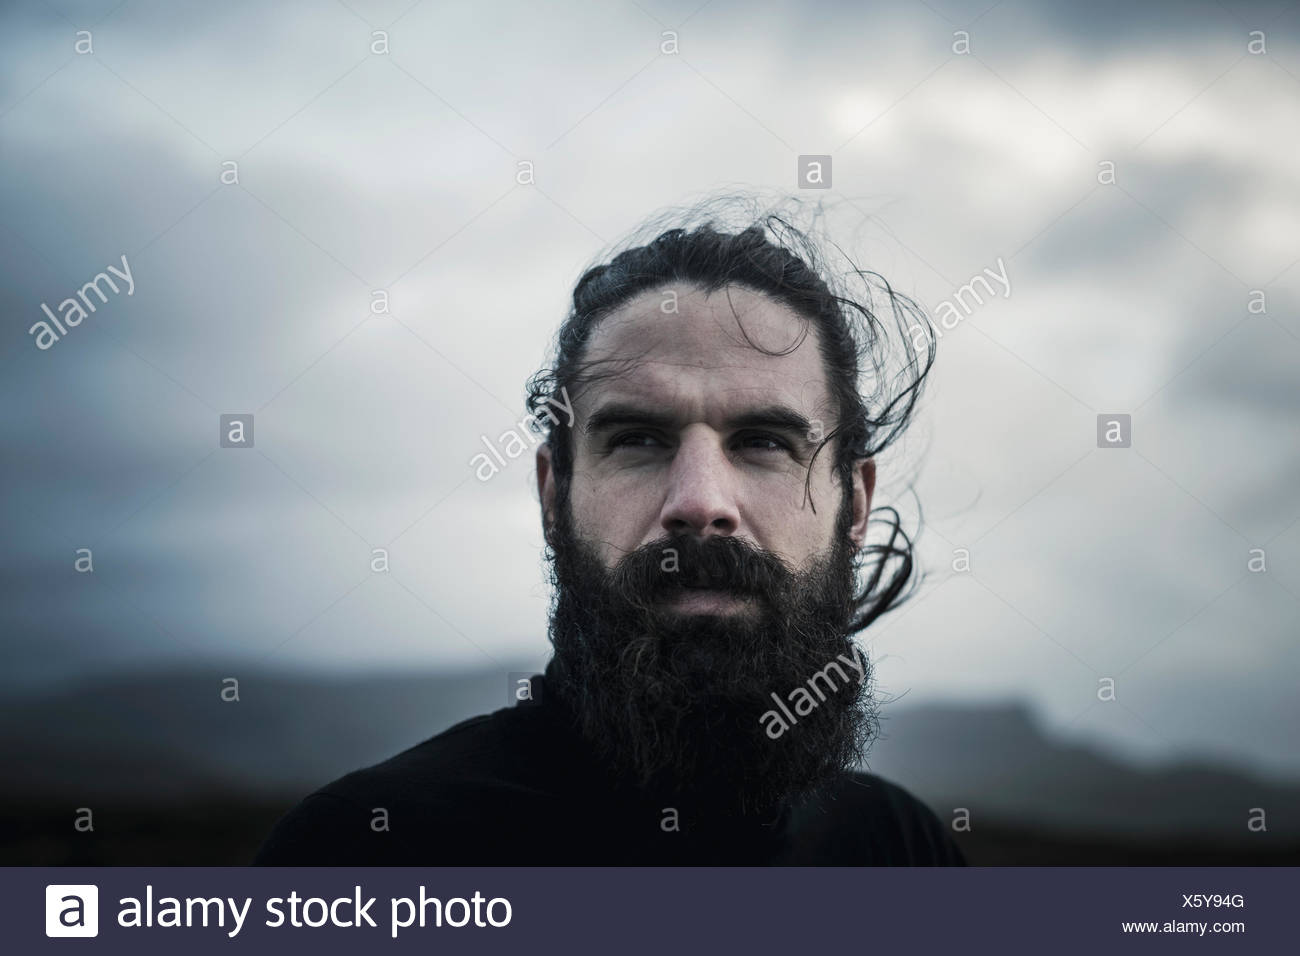 A man with black hair, a full beard and moustache. - Stock Image